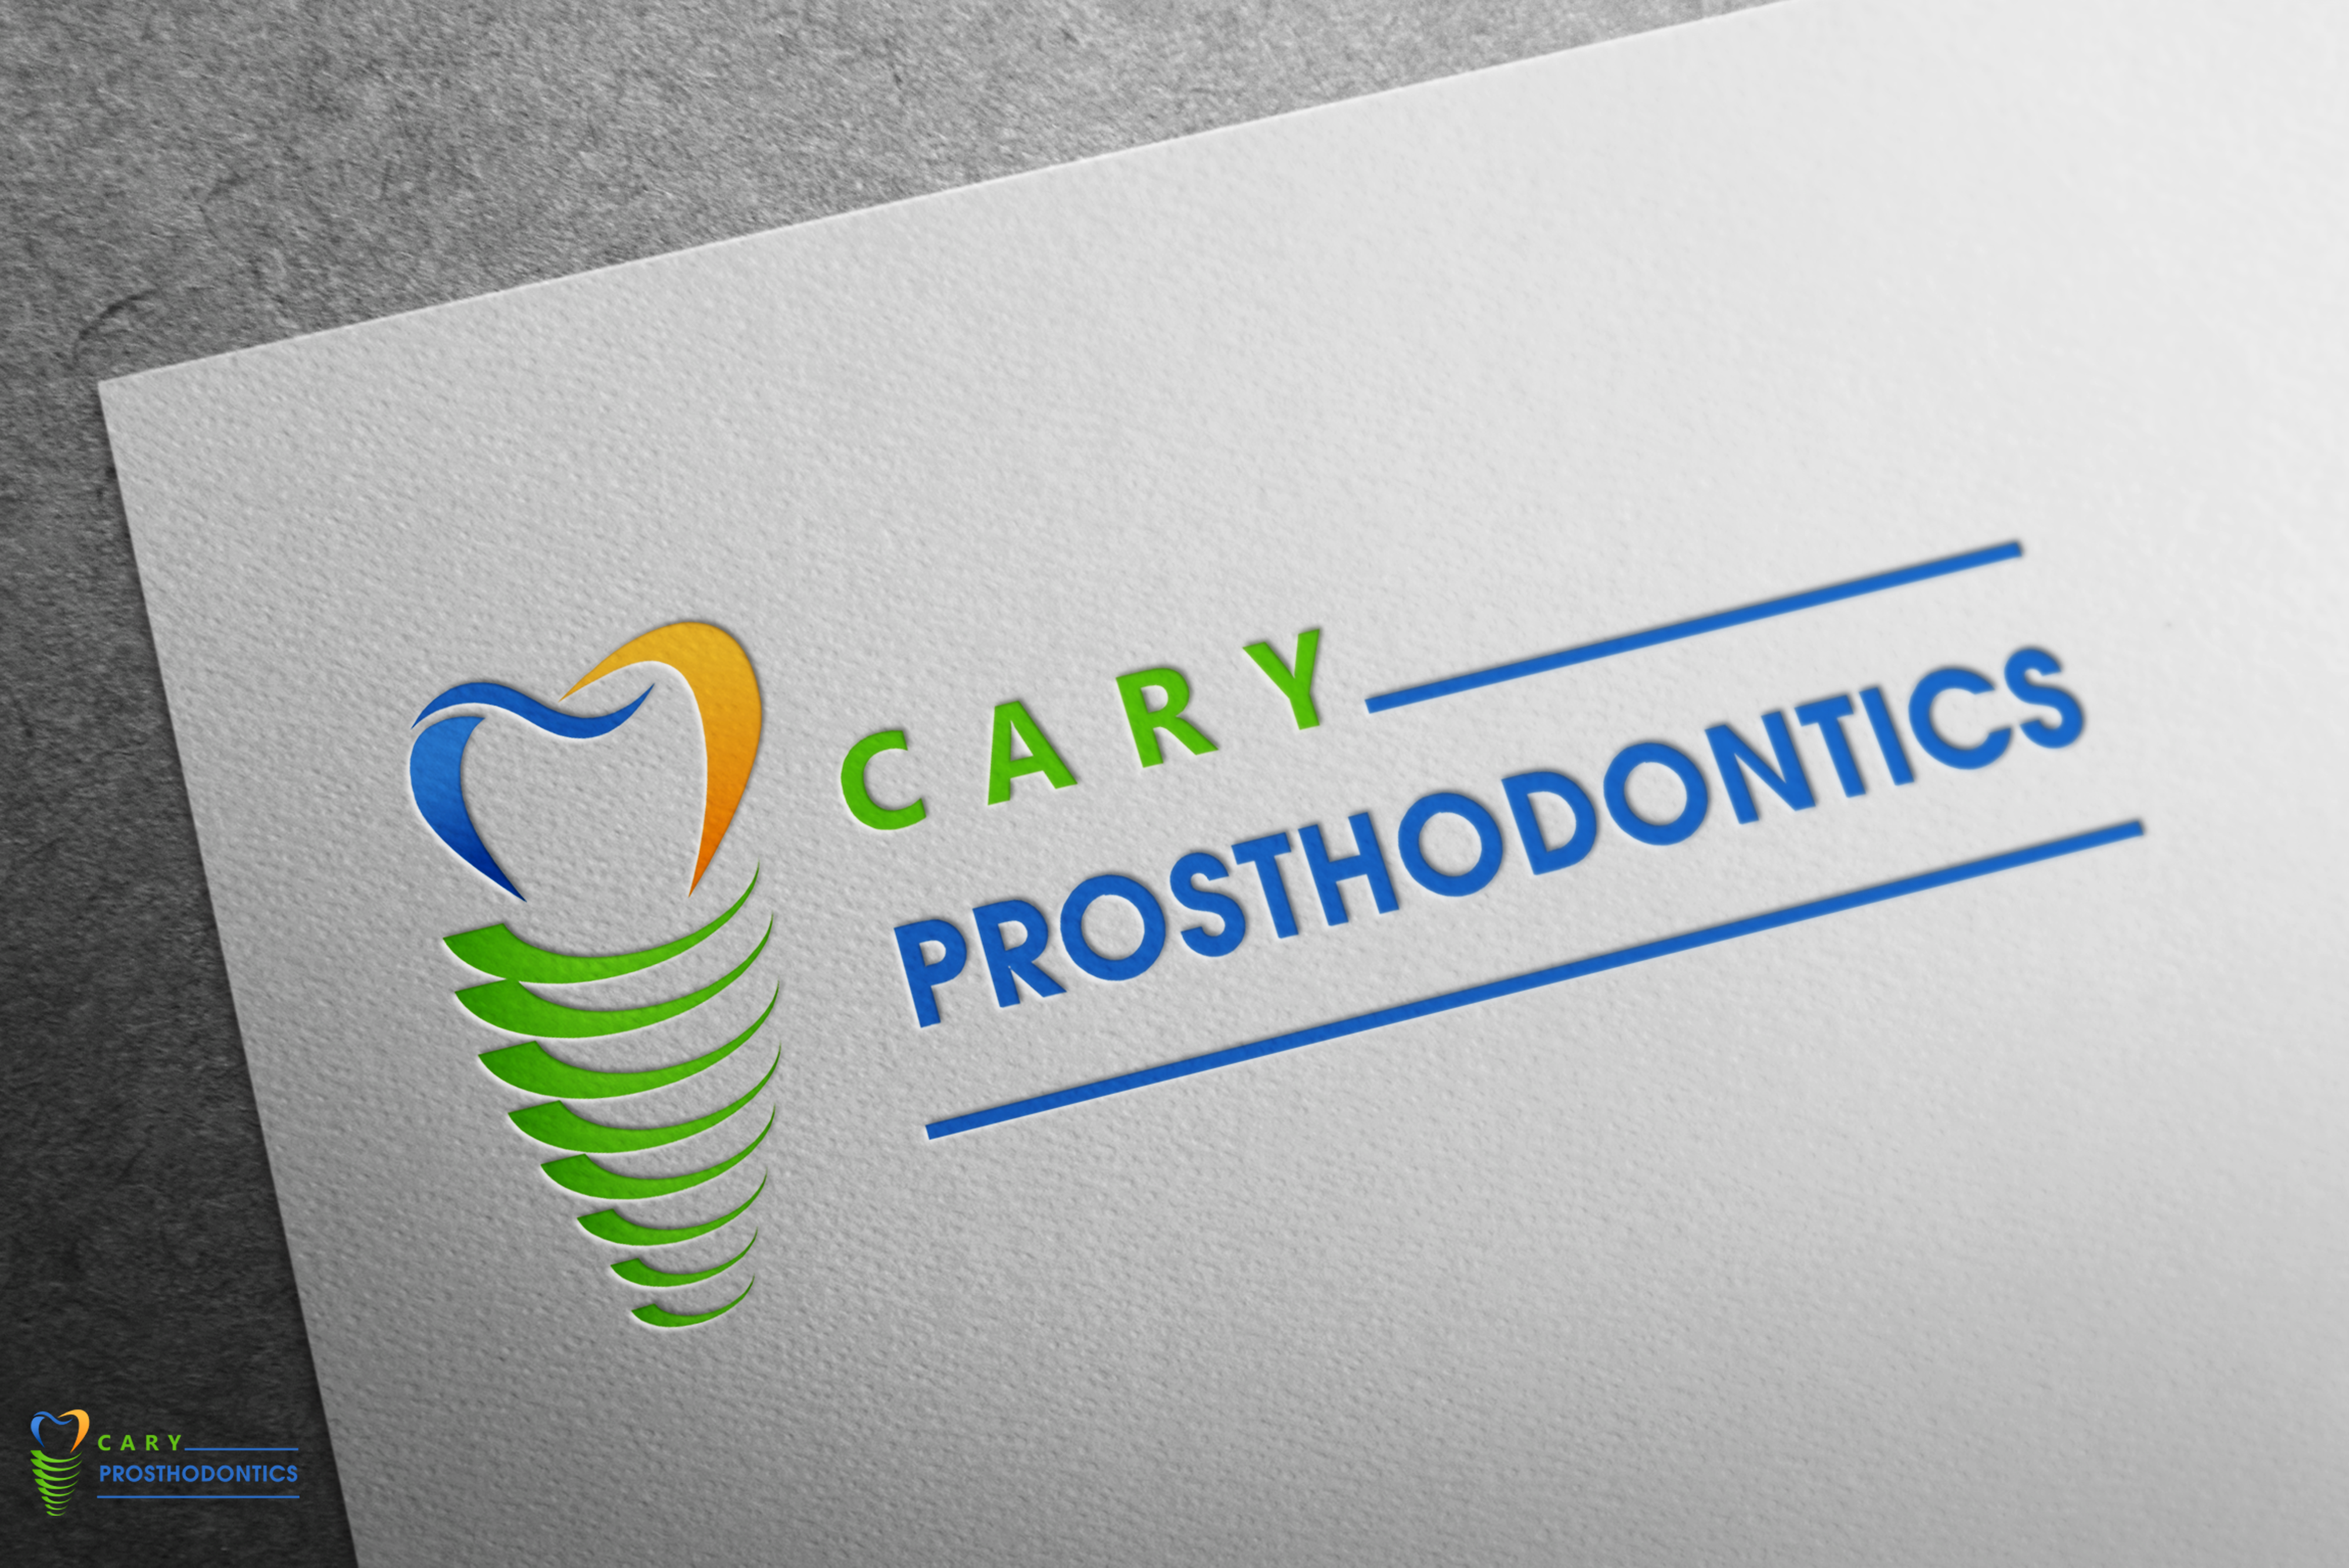 Logo Design by Hania Hassaan - Entry No. 146 in the Logo Design Contest Cary Prosthodontics Logo Design.